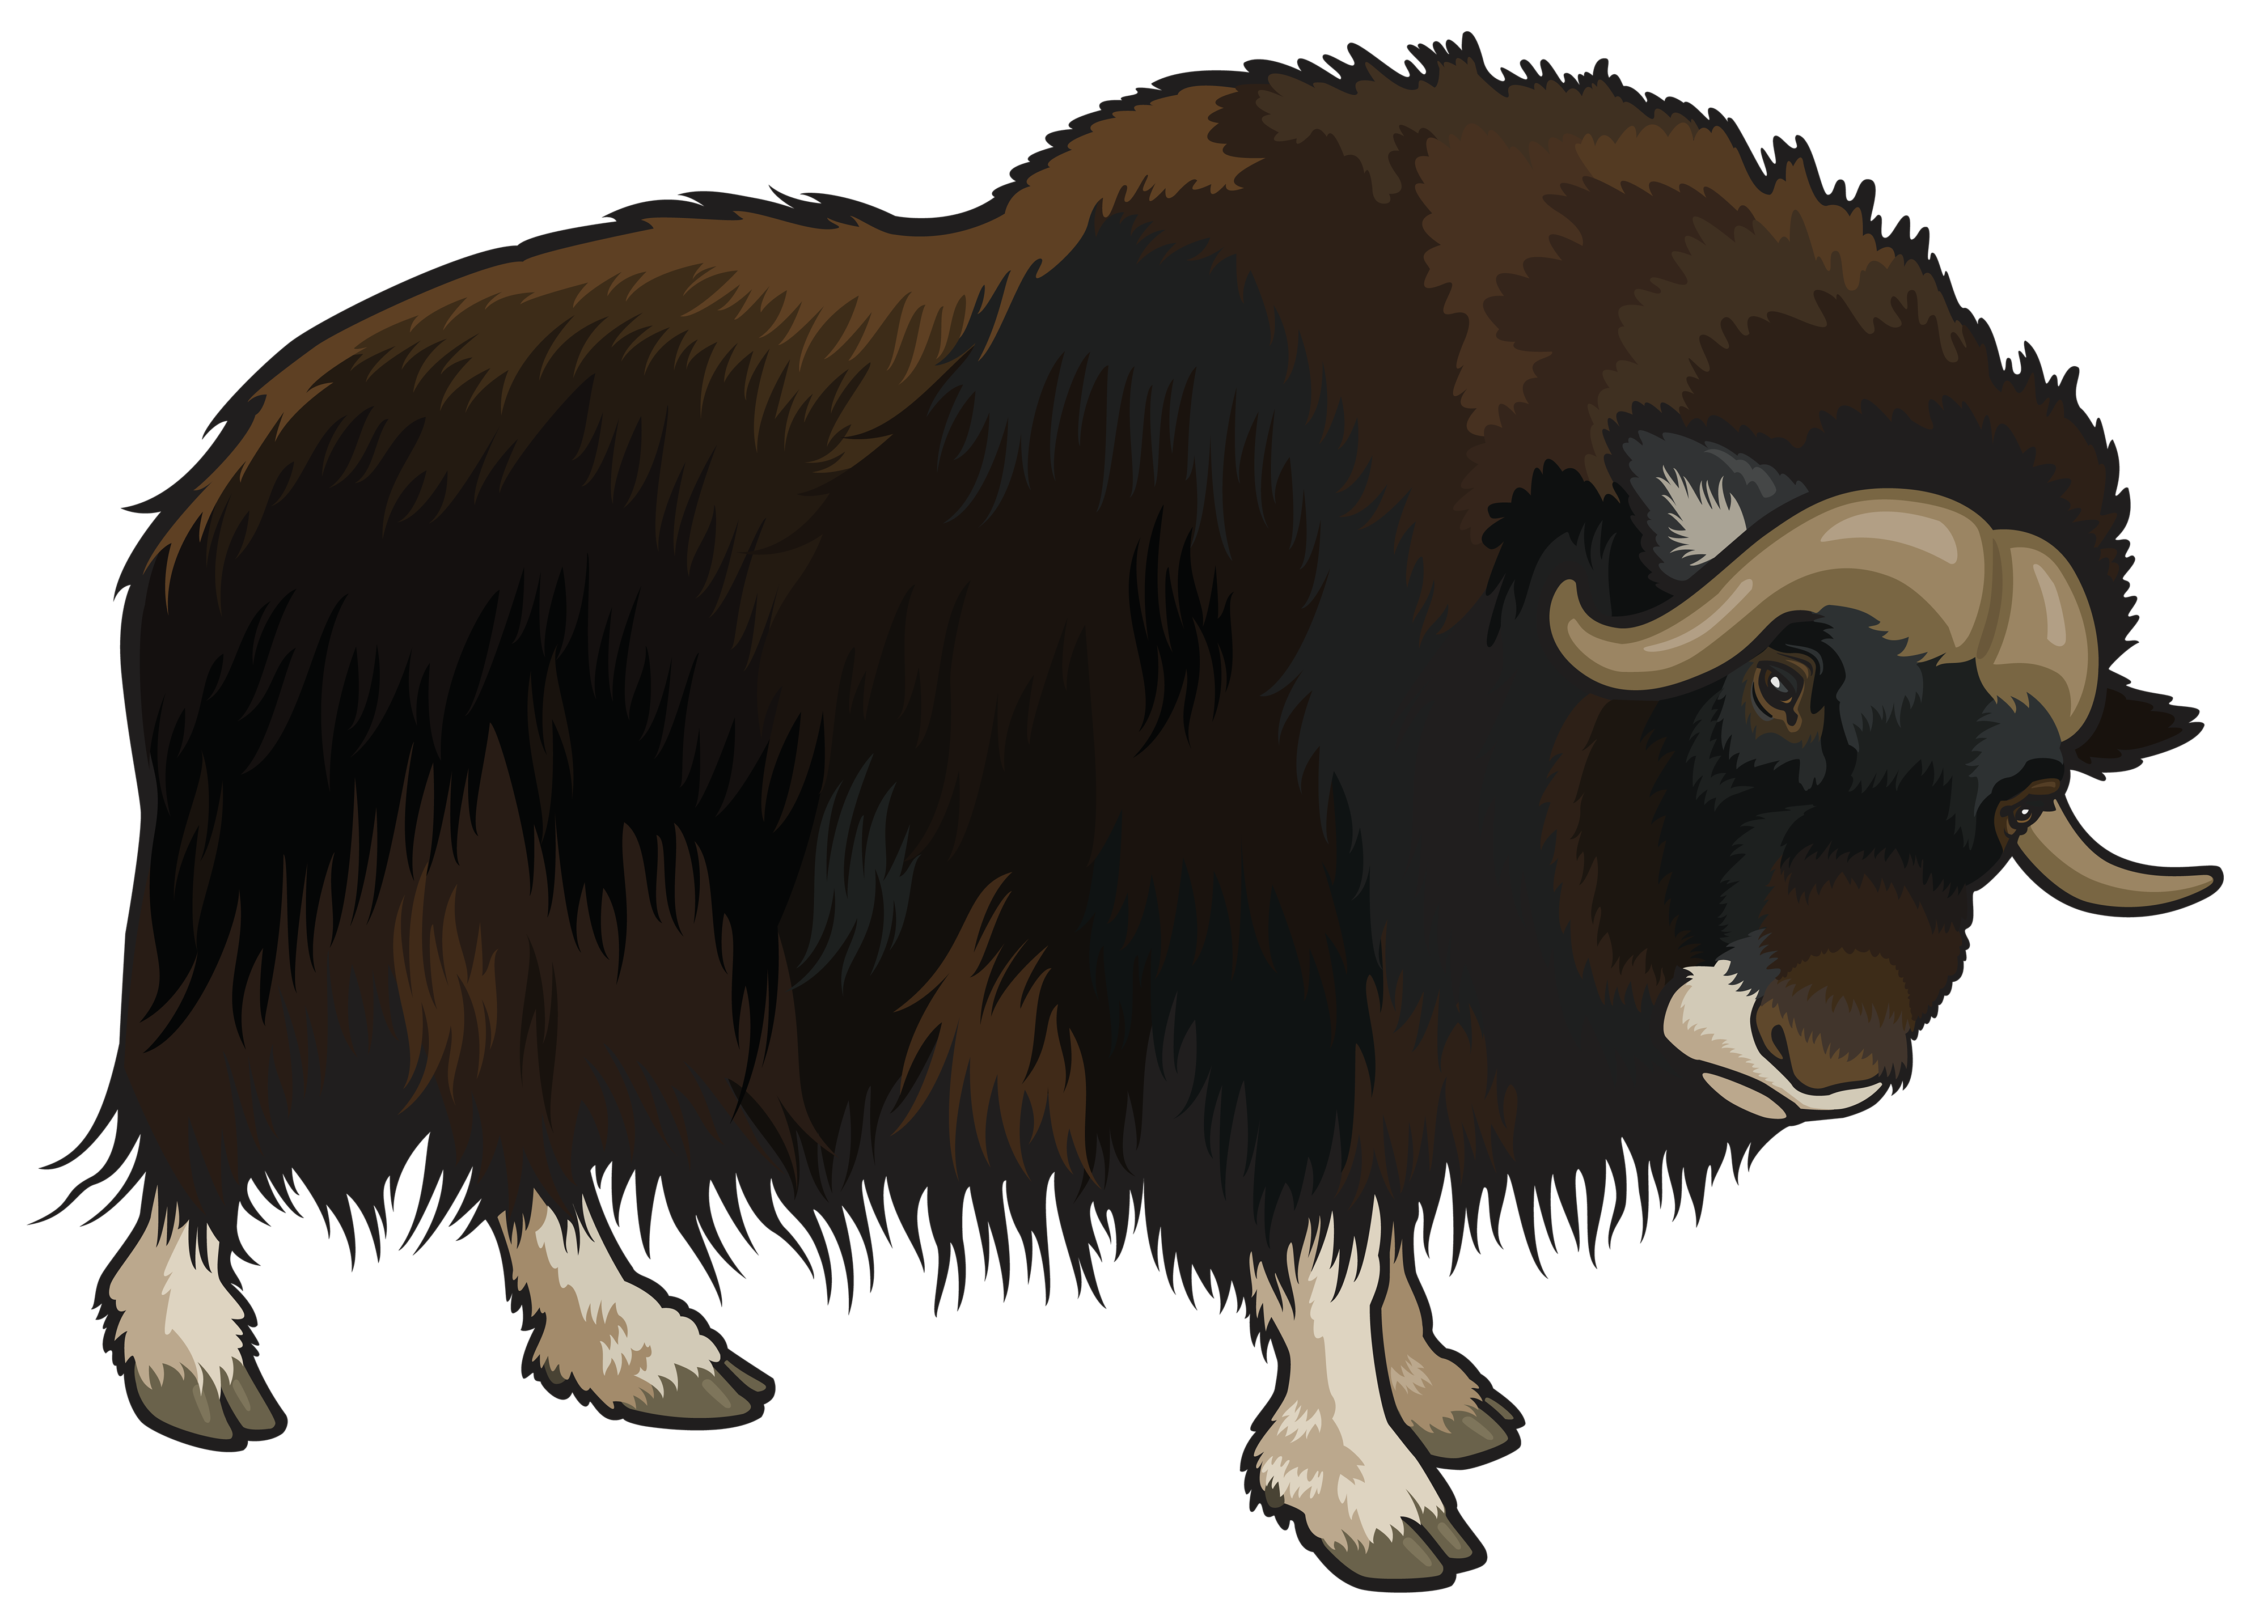 jpg royalty free Buffalo clipart. Png best web